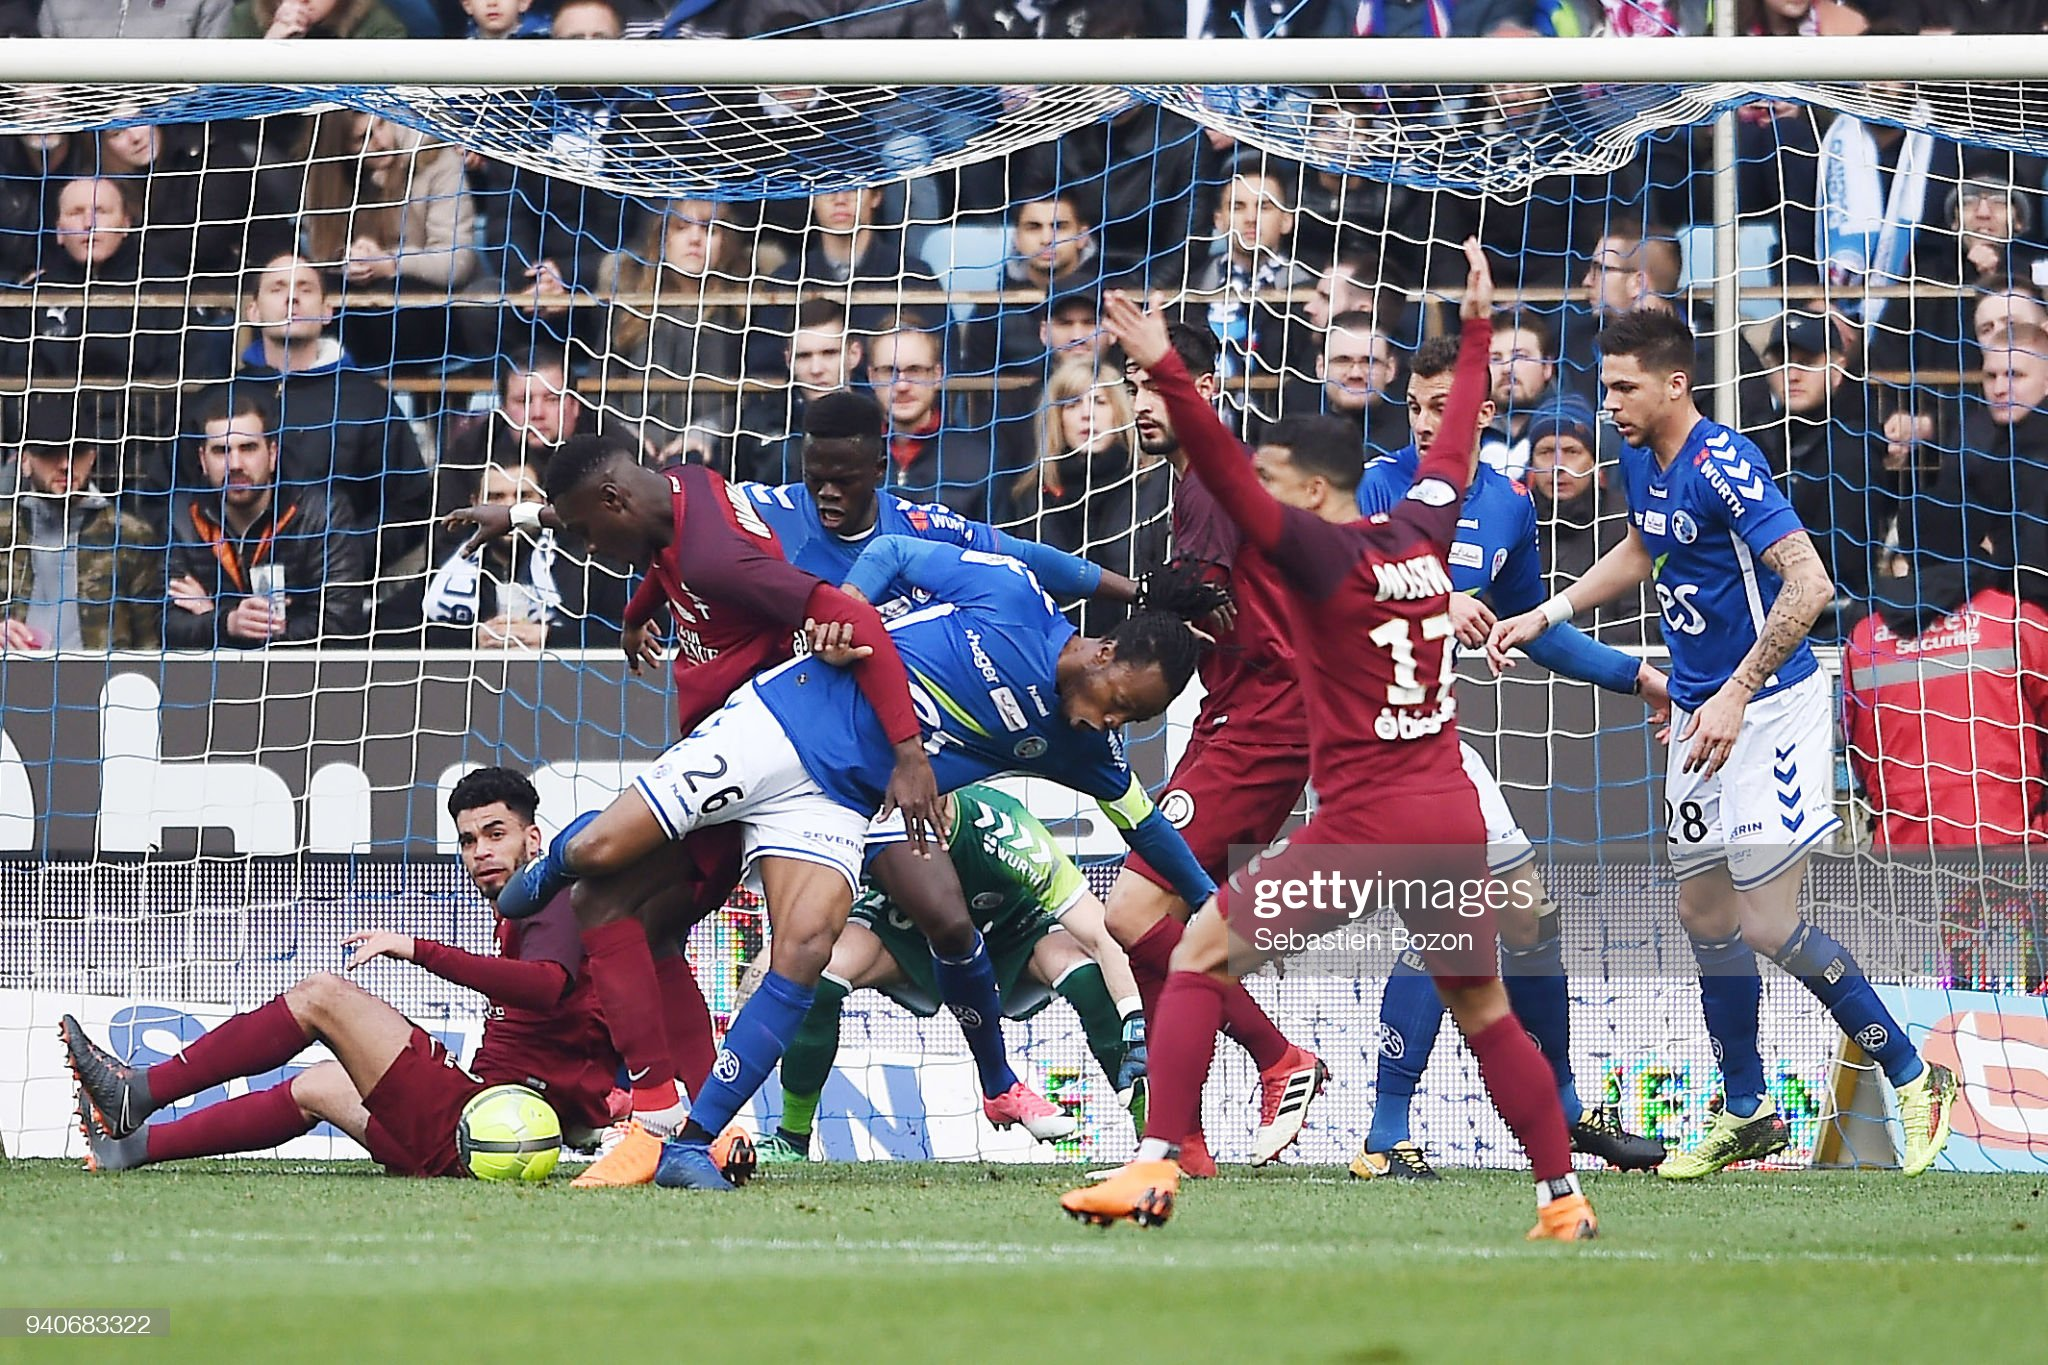 https://media.gettyimages.com/photos/bakary-kone-during-the-ligue...